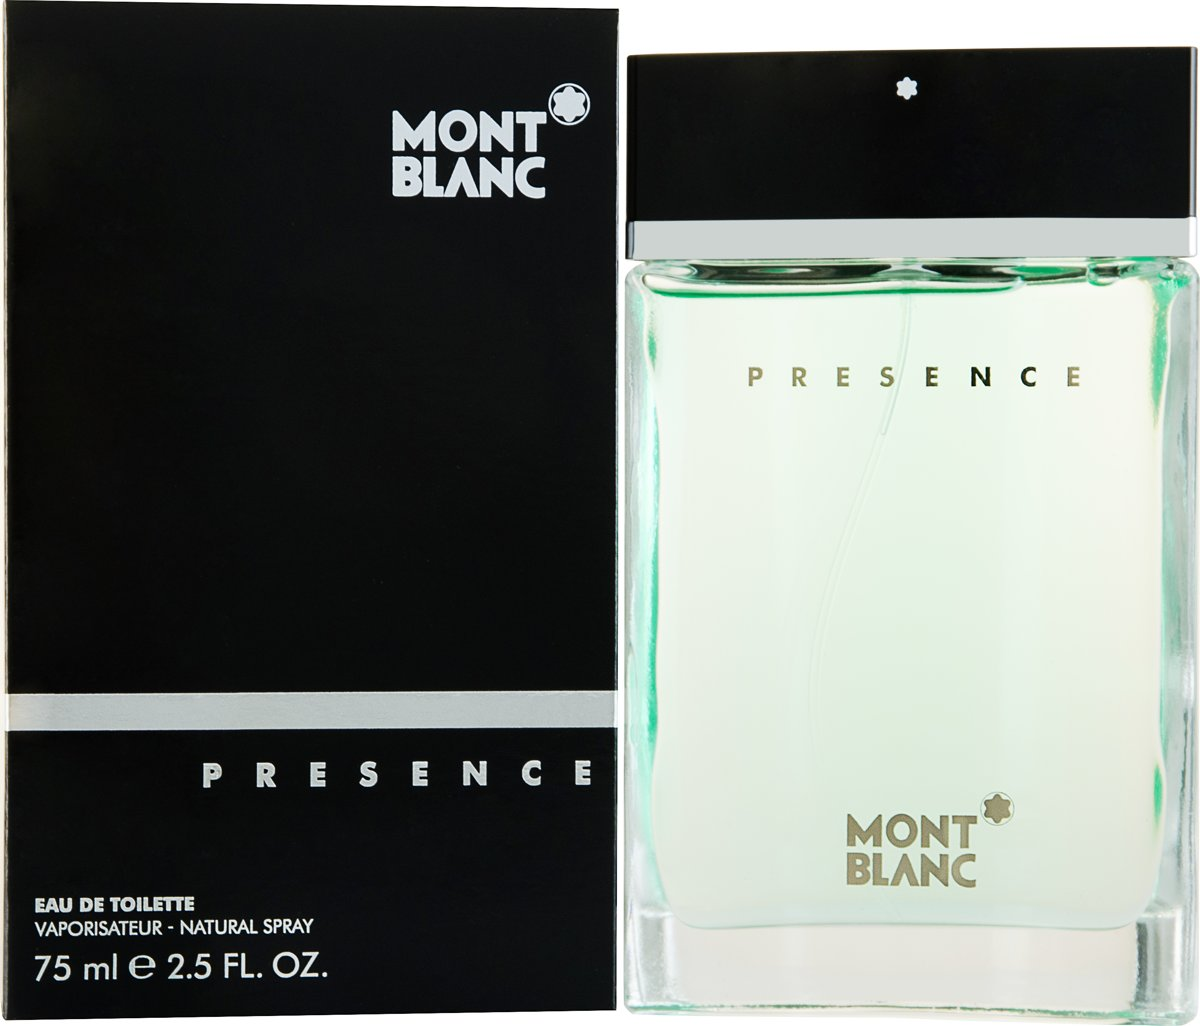 Montblanc Presence Men Spray - 75 ml - Eau De Toilette